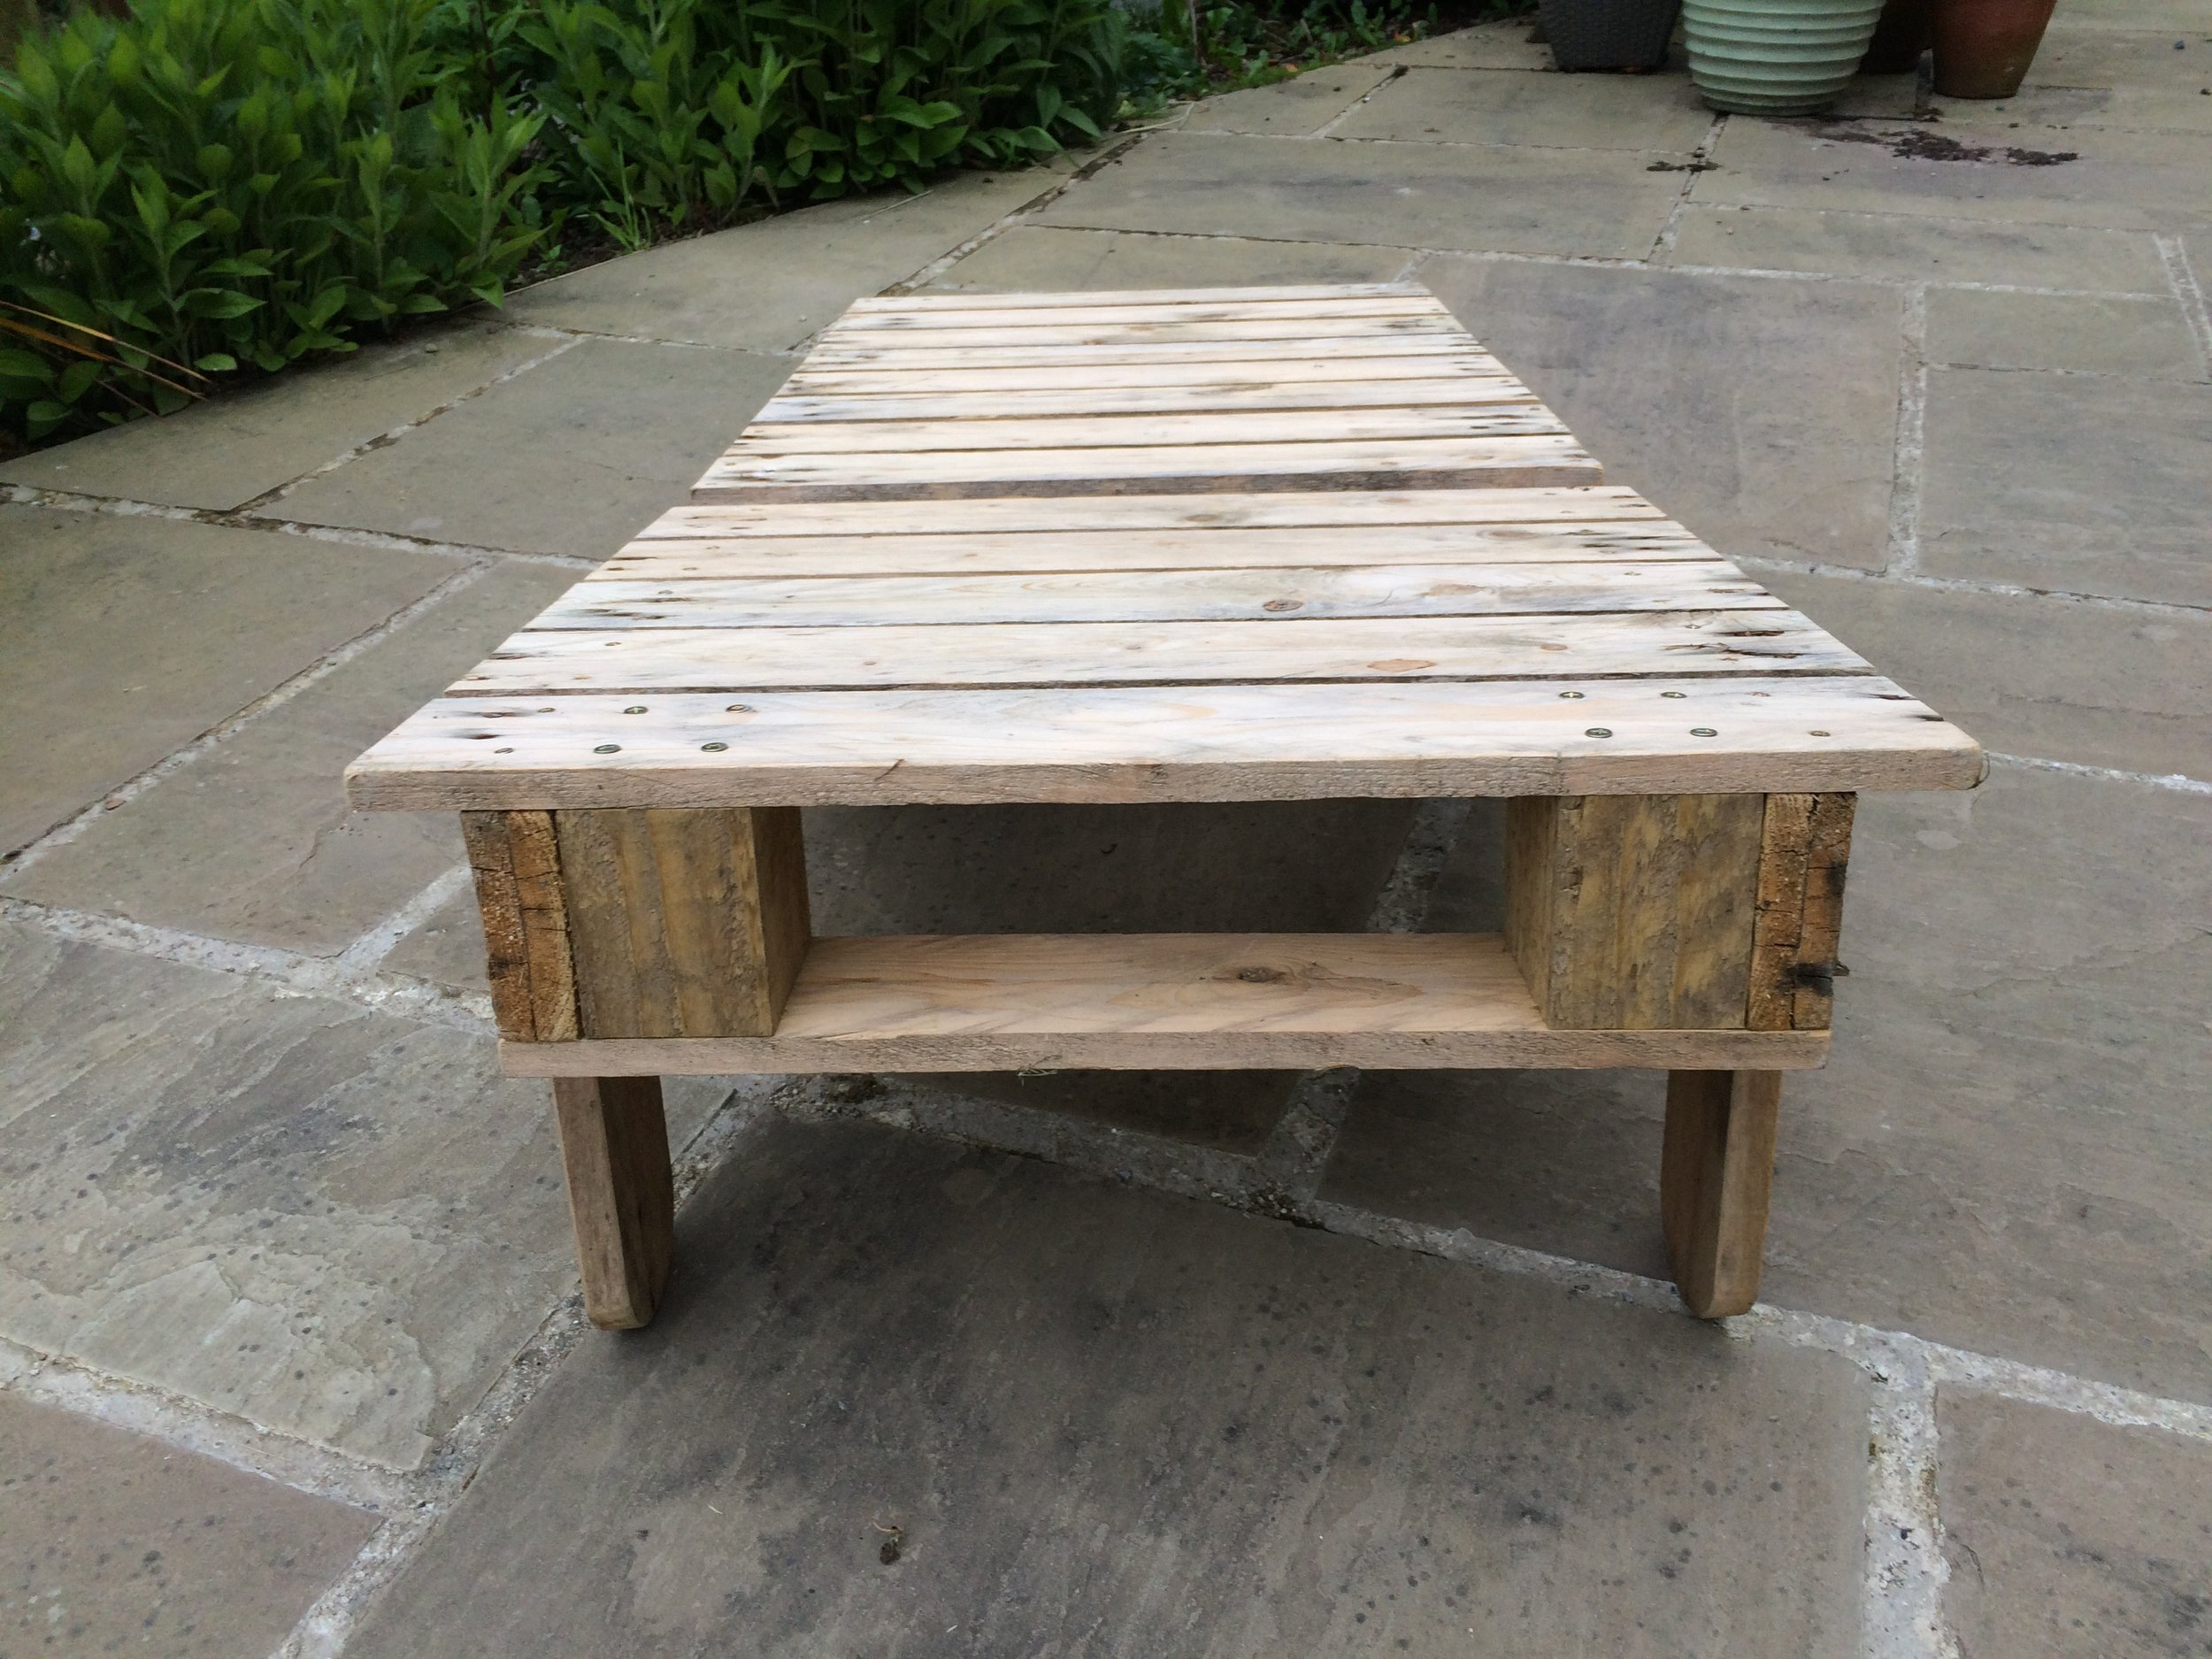 The Big Chill Sunlounger - Reclining chair made from pallets